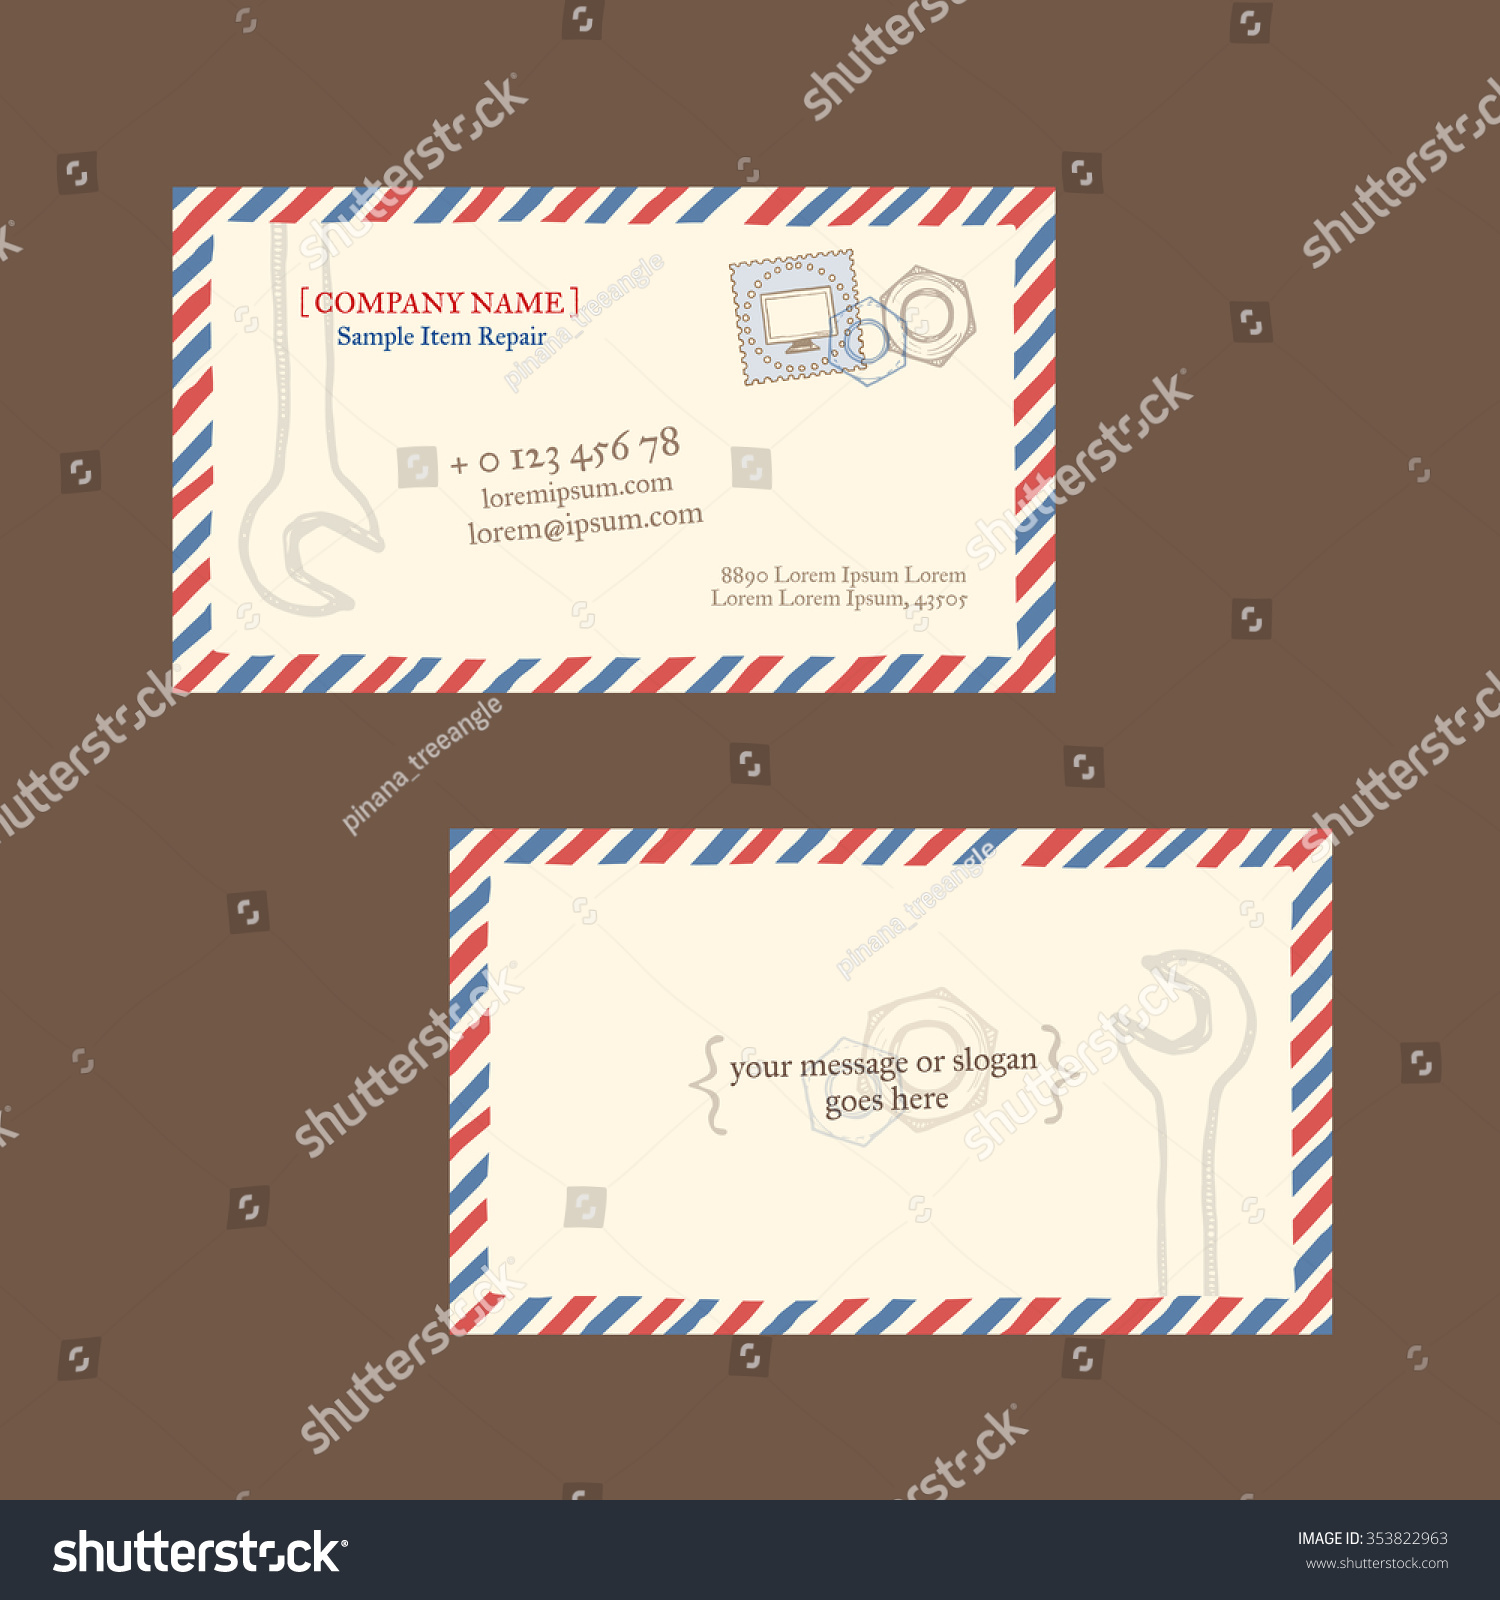 Computer display repair business card vector stock vector computer display repair business card vector template styled as a vintage envelope with postage magicingreecefo Images